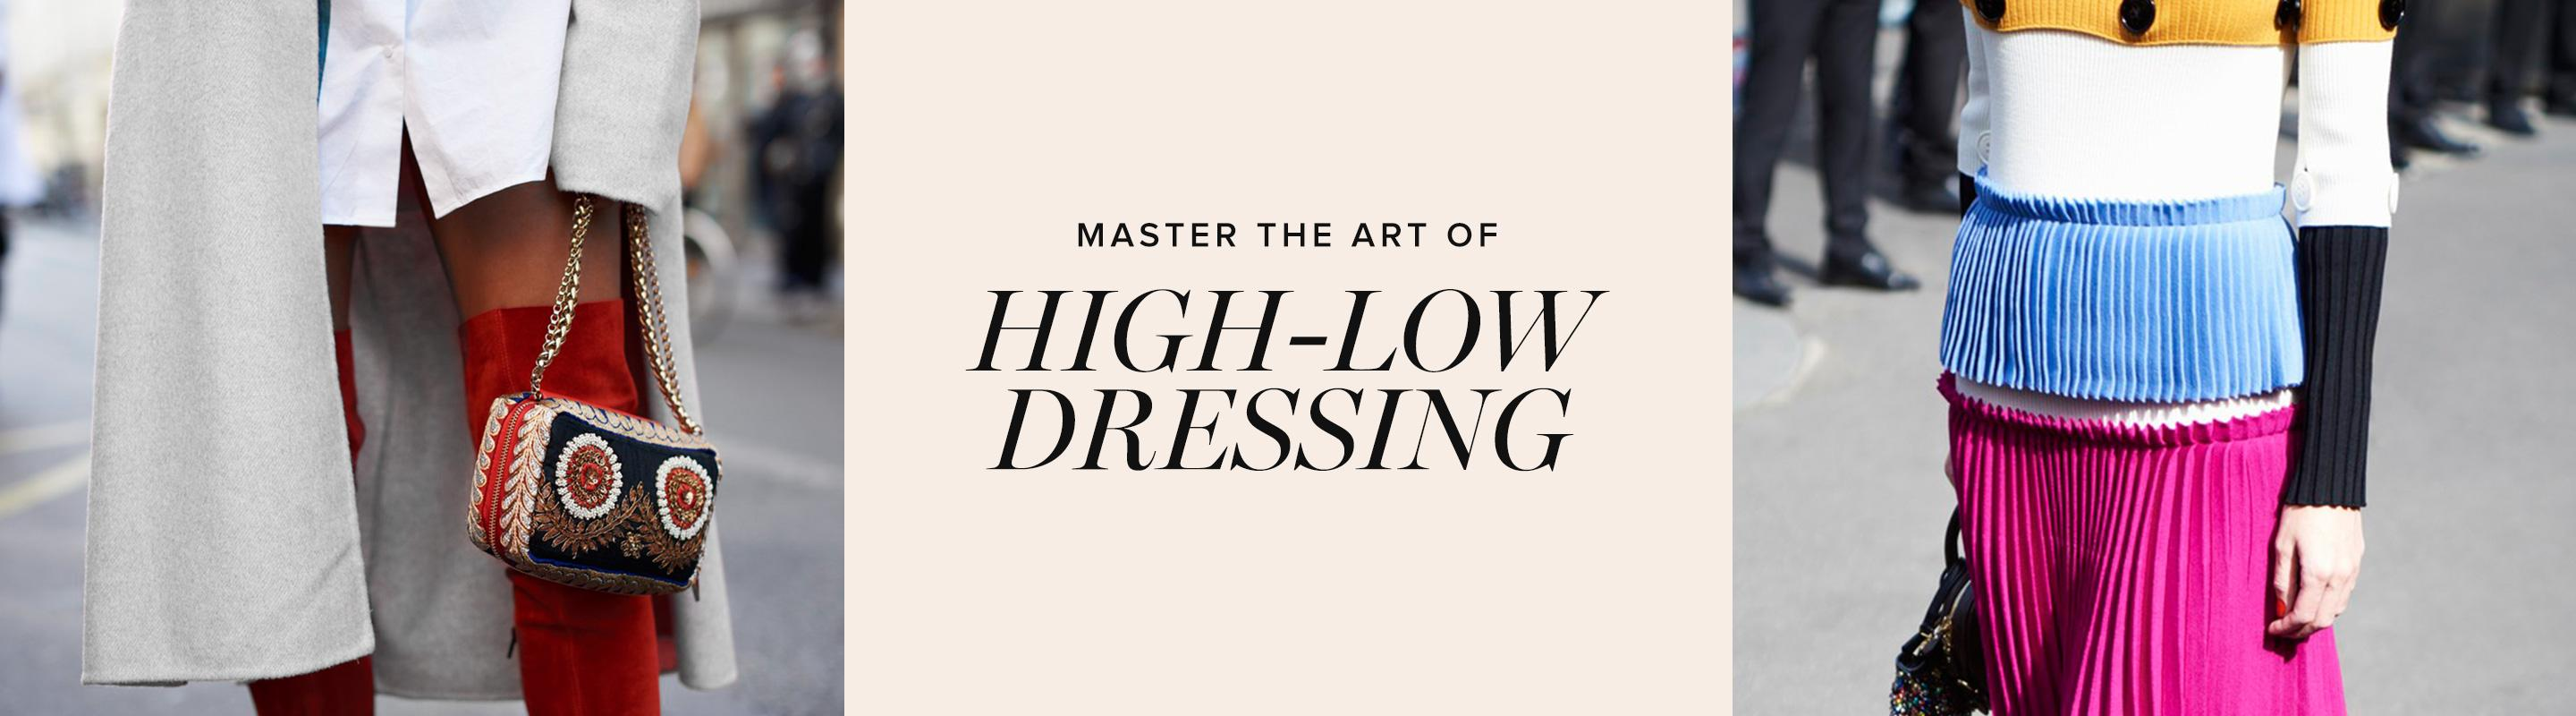 The Art Of High-Low Dressing